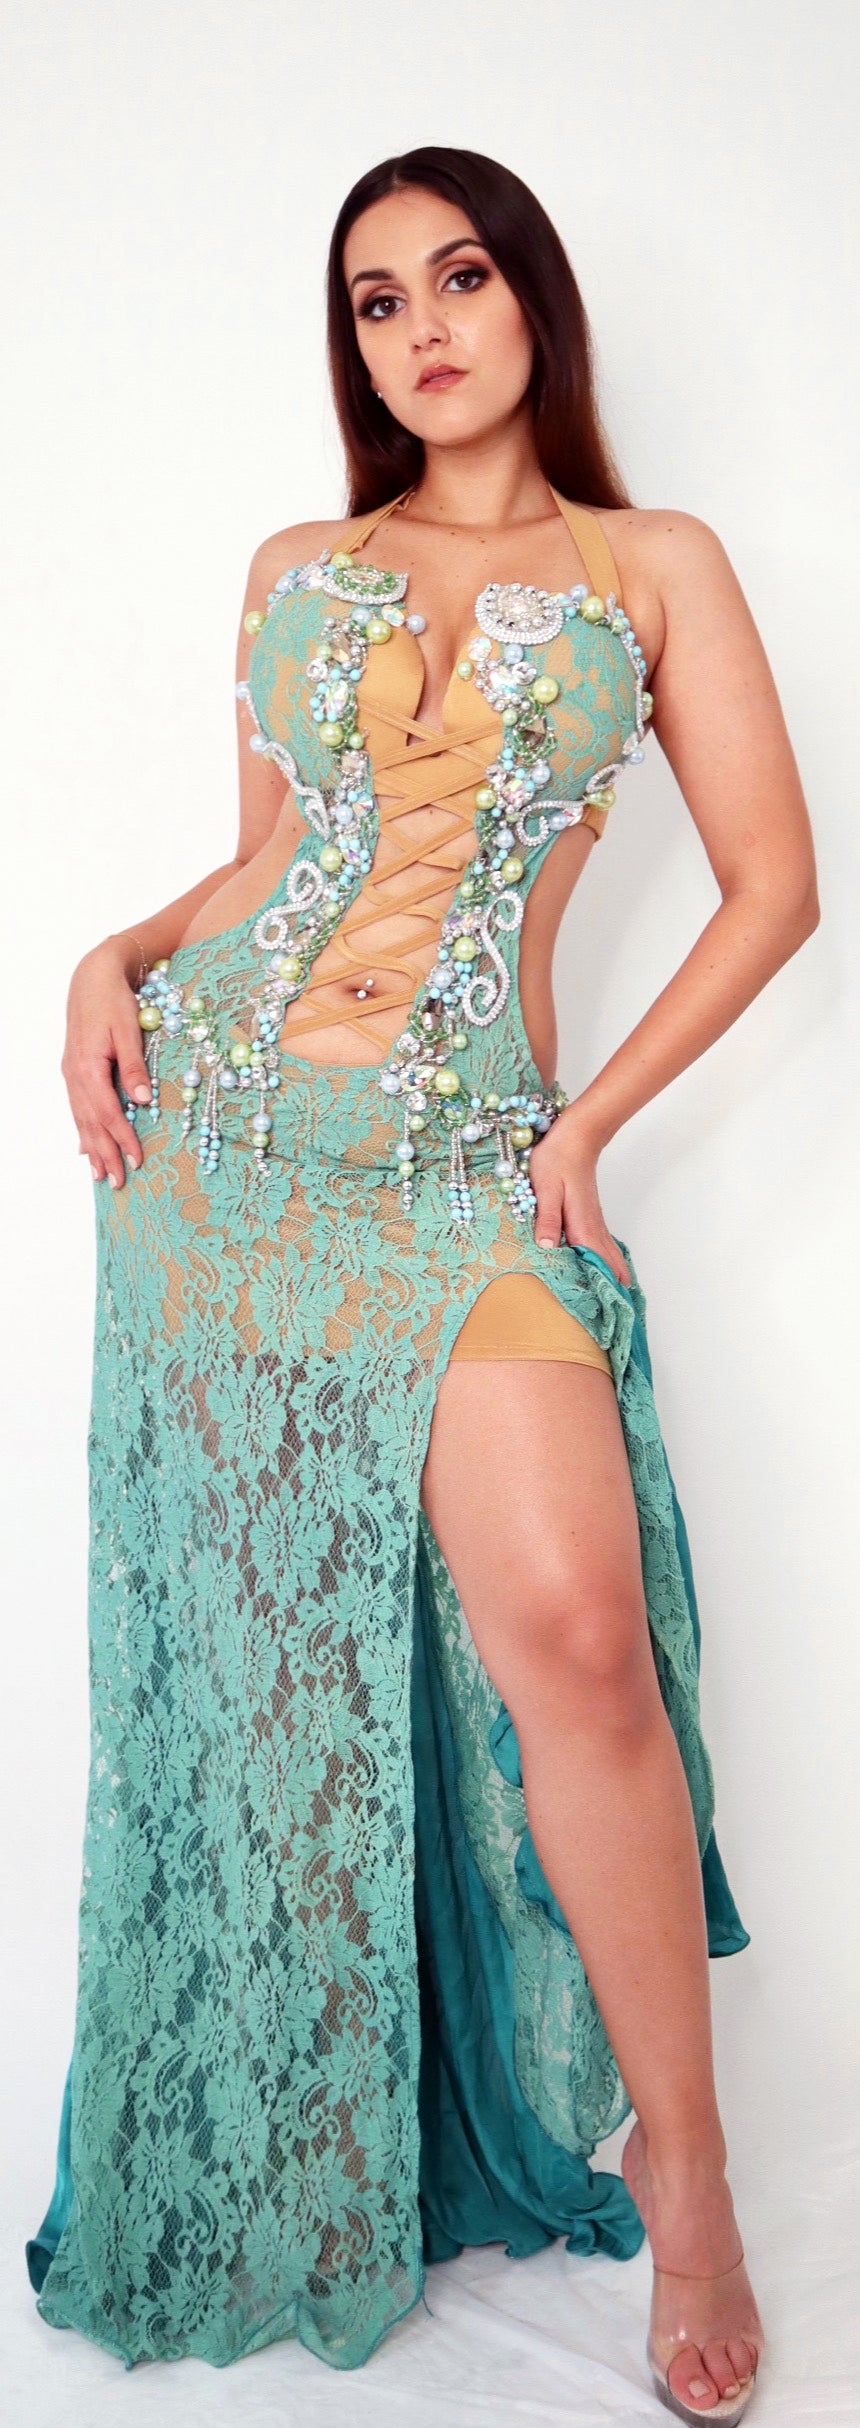 Mumtaz One-Piece Costume 24046